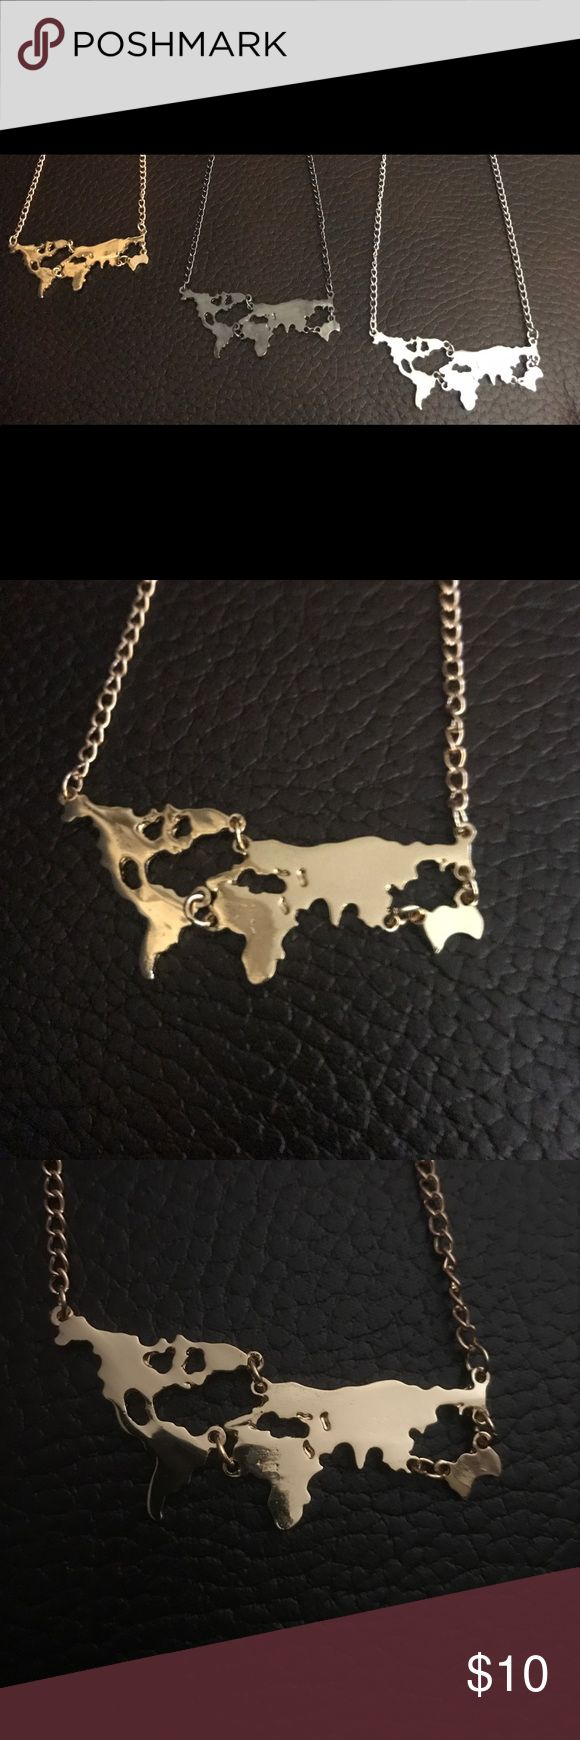 Best  Map Necklace Ideas On Pinterest Bling Maps Buy Maps - Chicago map necklace